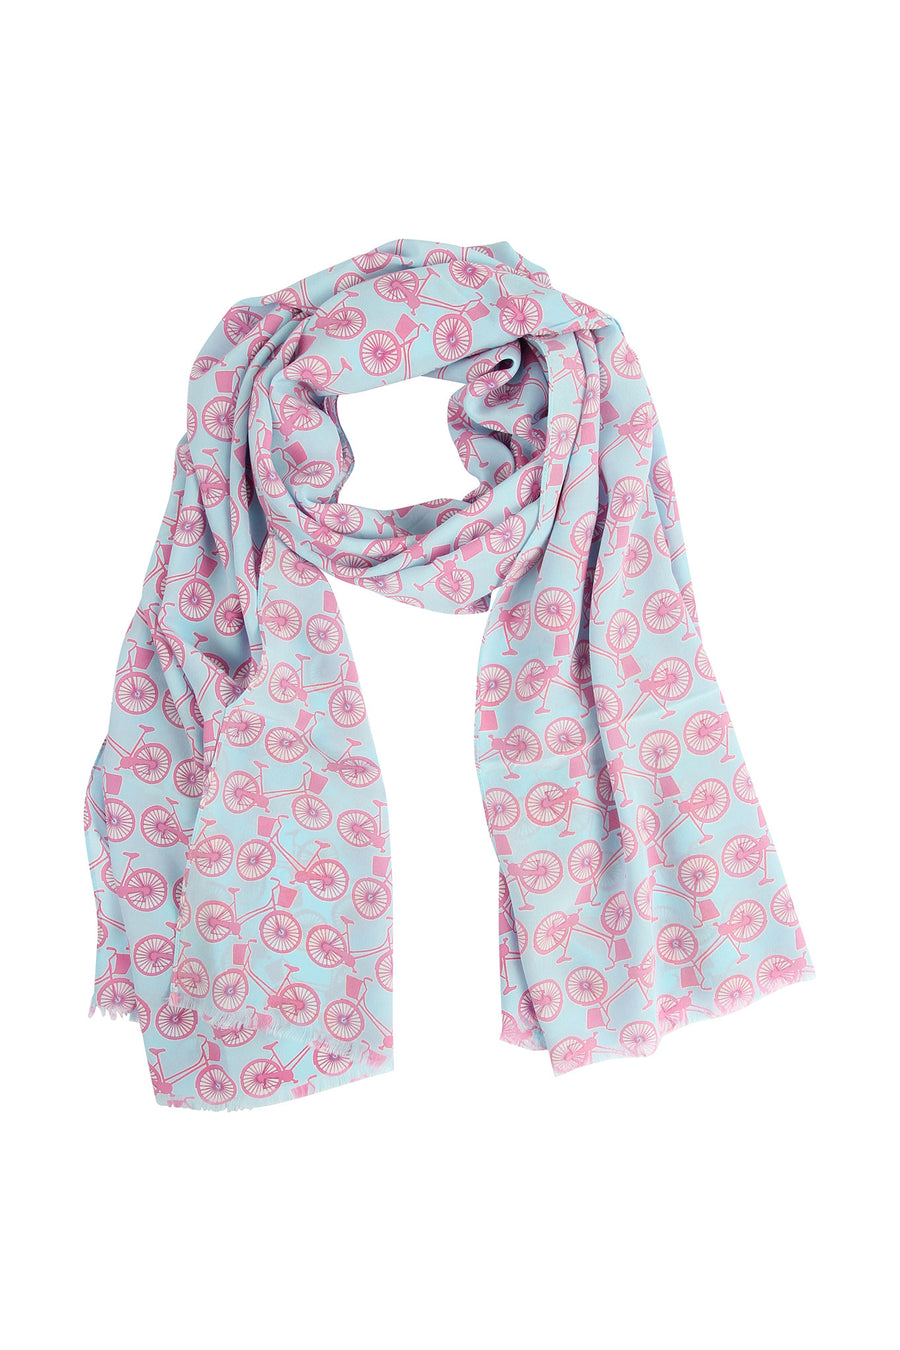 Lotty B Silk Crepe-de-Chine Long Scarf BICYCLE REPEAT - PINK Pasture Bay